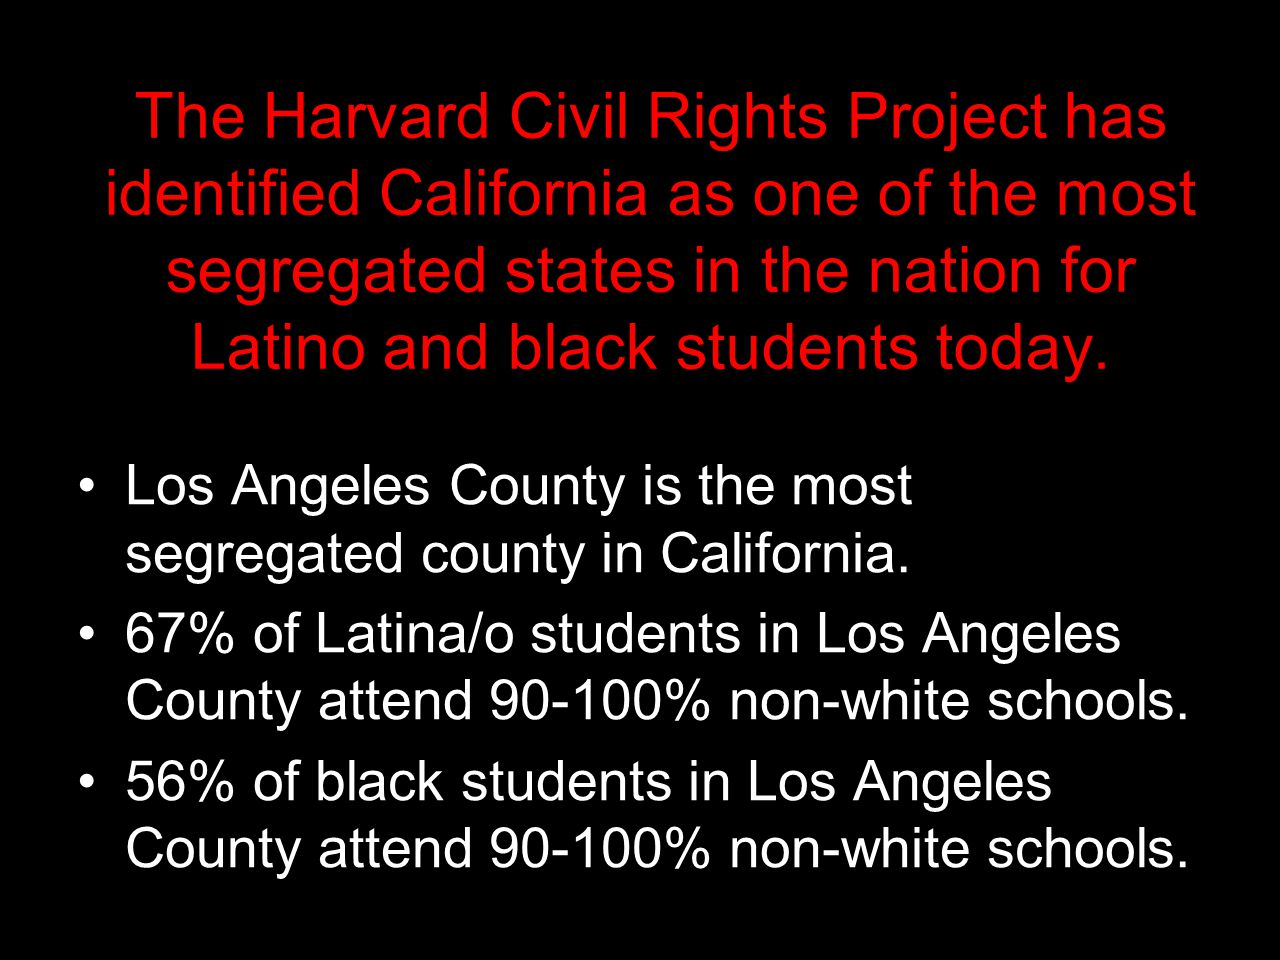 The Harvard Civil Rights Project has identified California as one of the most segregated states in the nation for Latino and black students today.